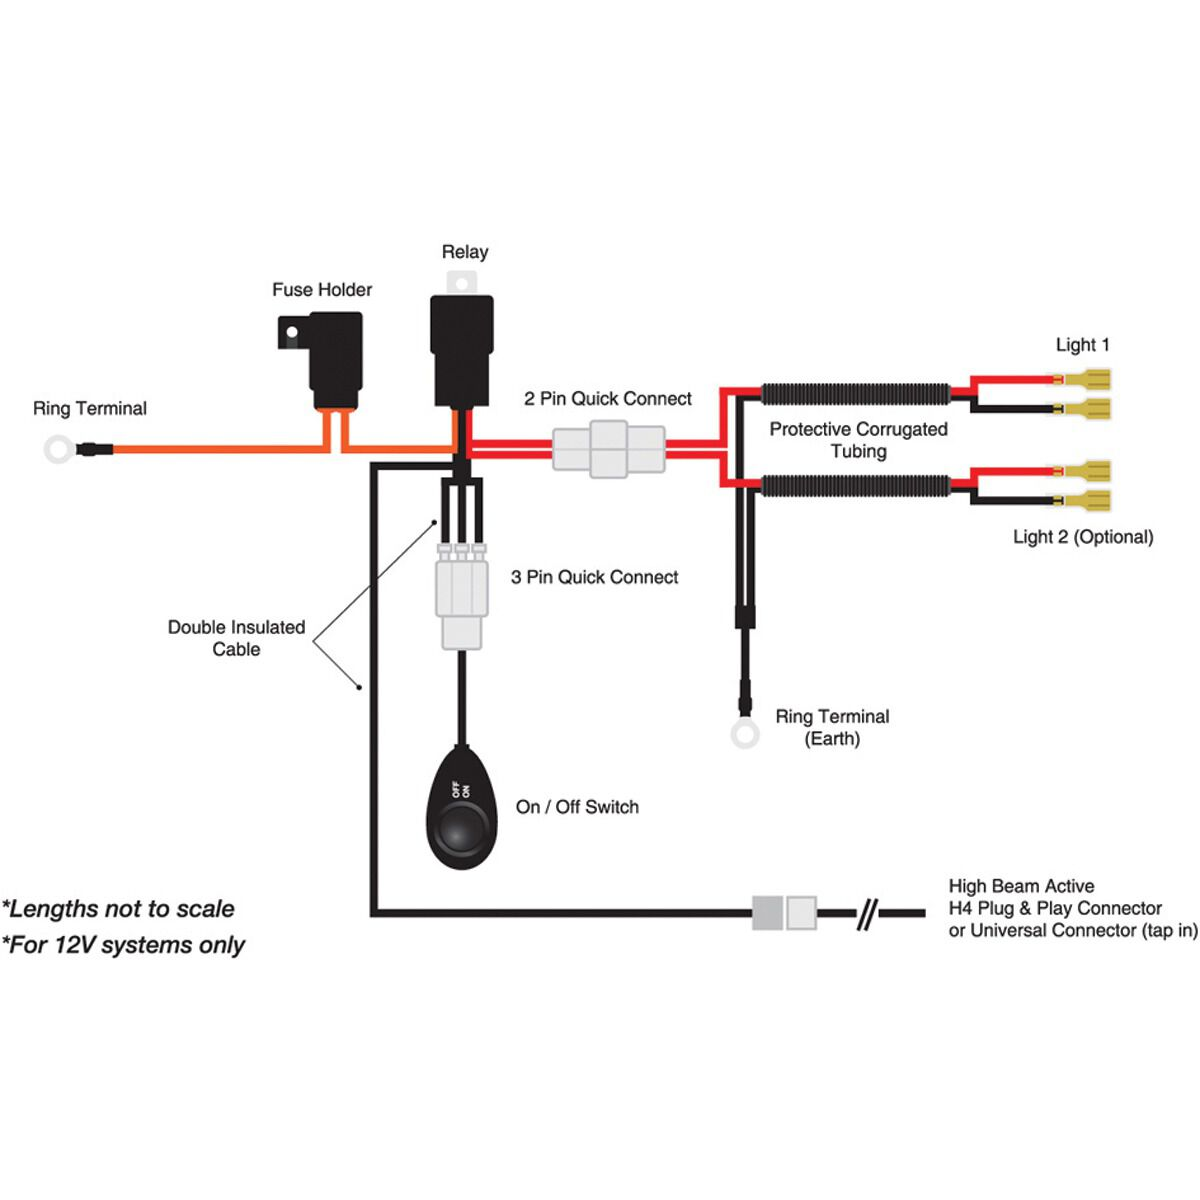 sca driving light harness narva driving light wiring harness diagram driving light wiring harness [ 1200 x 1200 Pixel ]